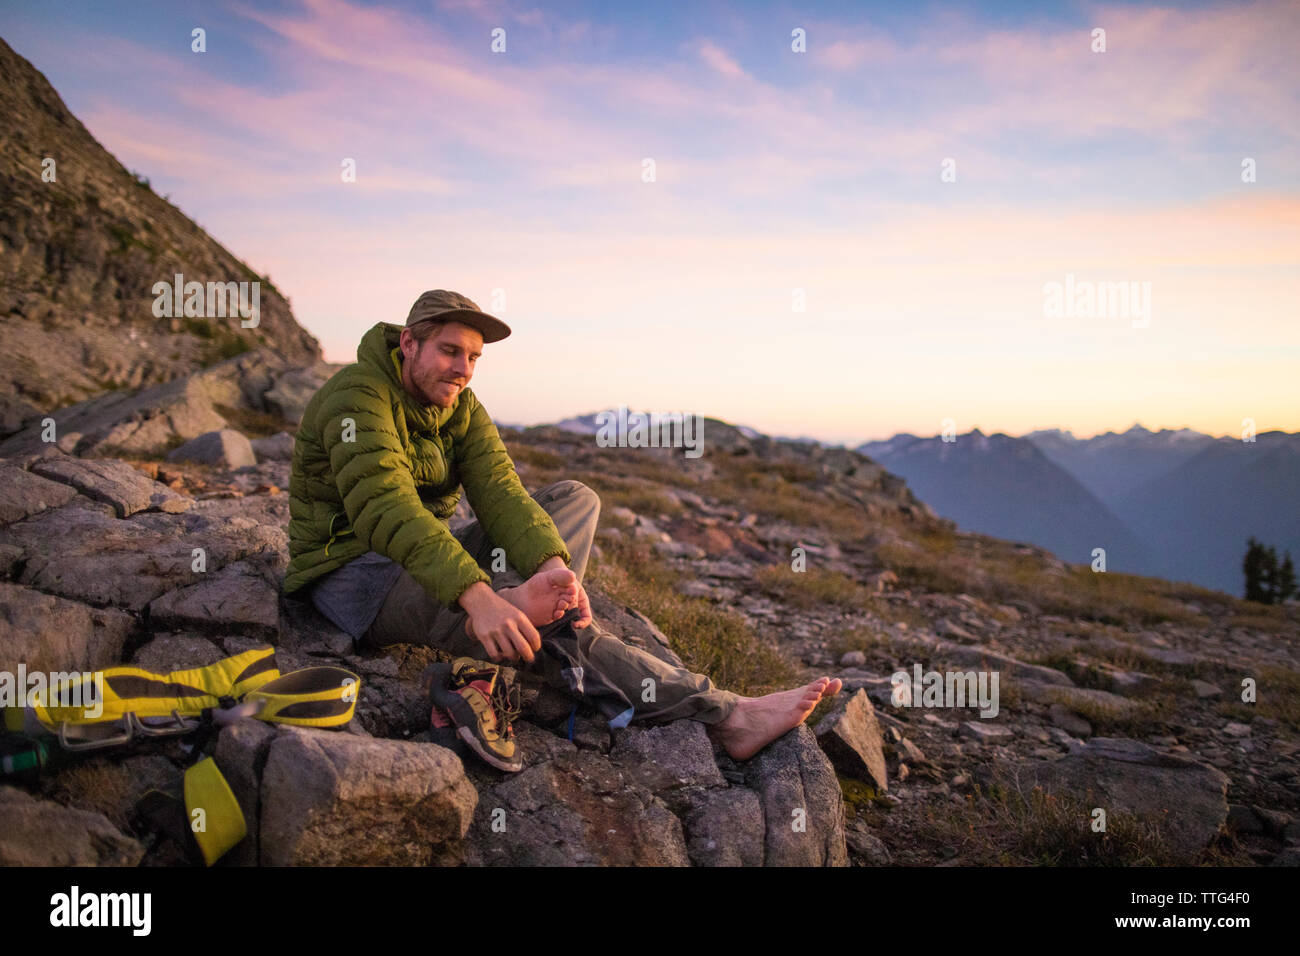 Climber takes his shoes off after a long day in the mountains. - Stock Image